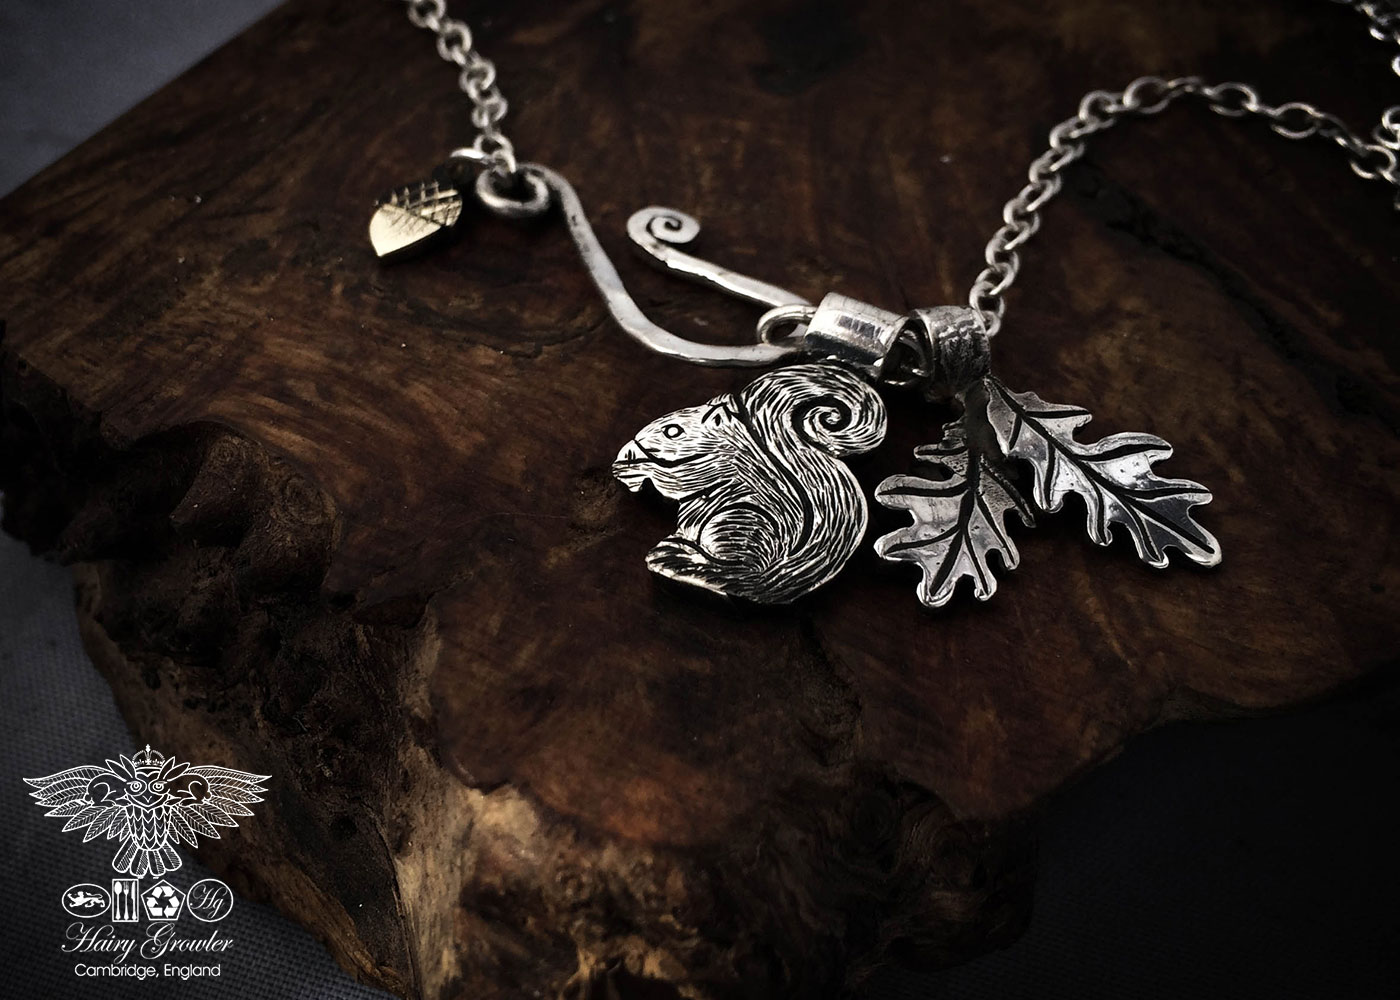 Squirrel jewellery handmade and recycled silver coins squirrel charm for a tree sculpture, necklace or bracelet